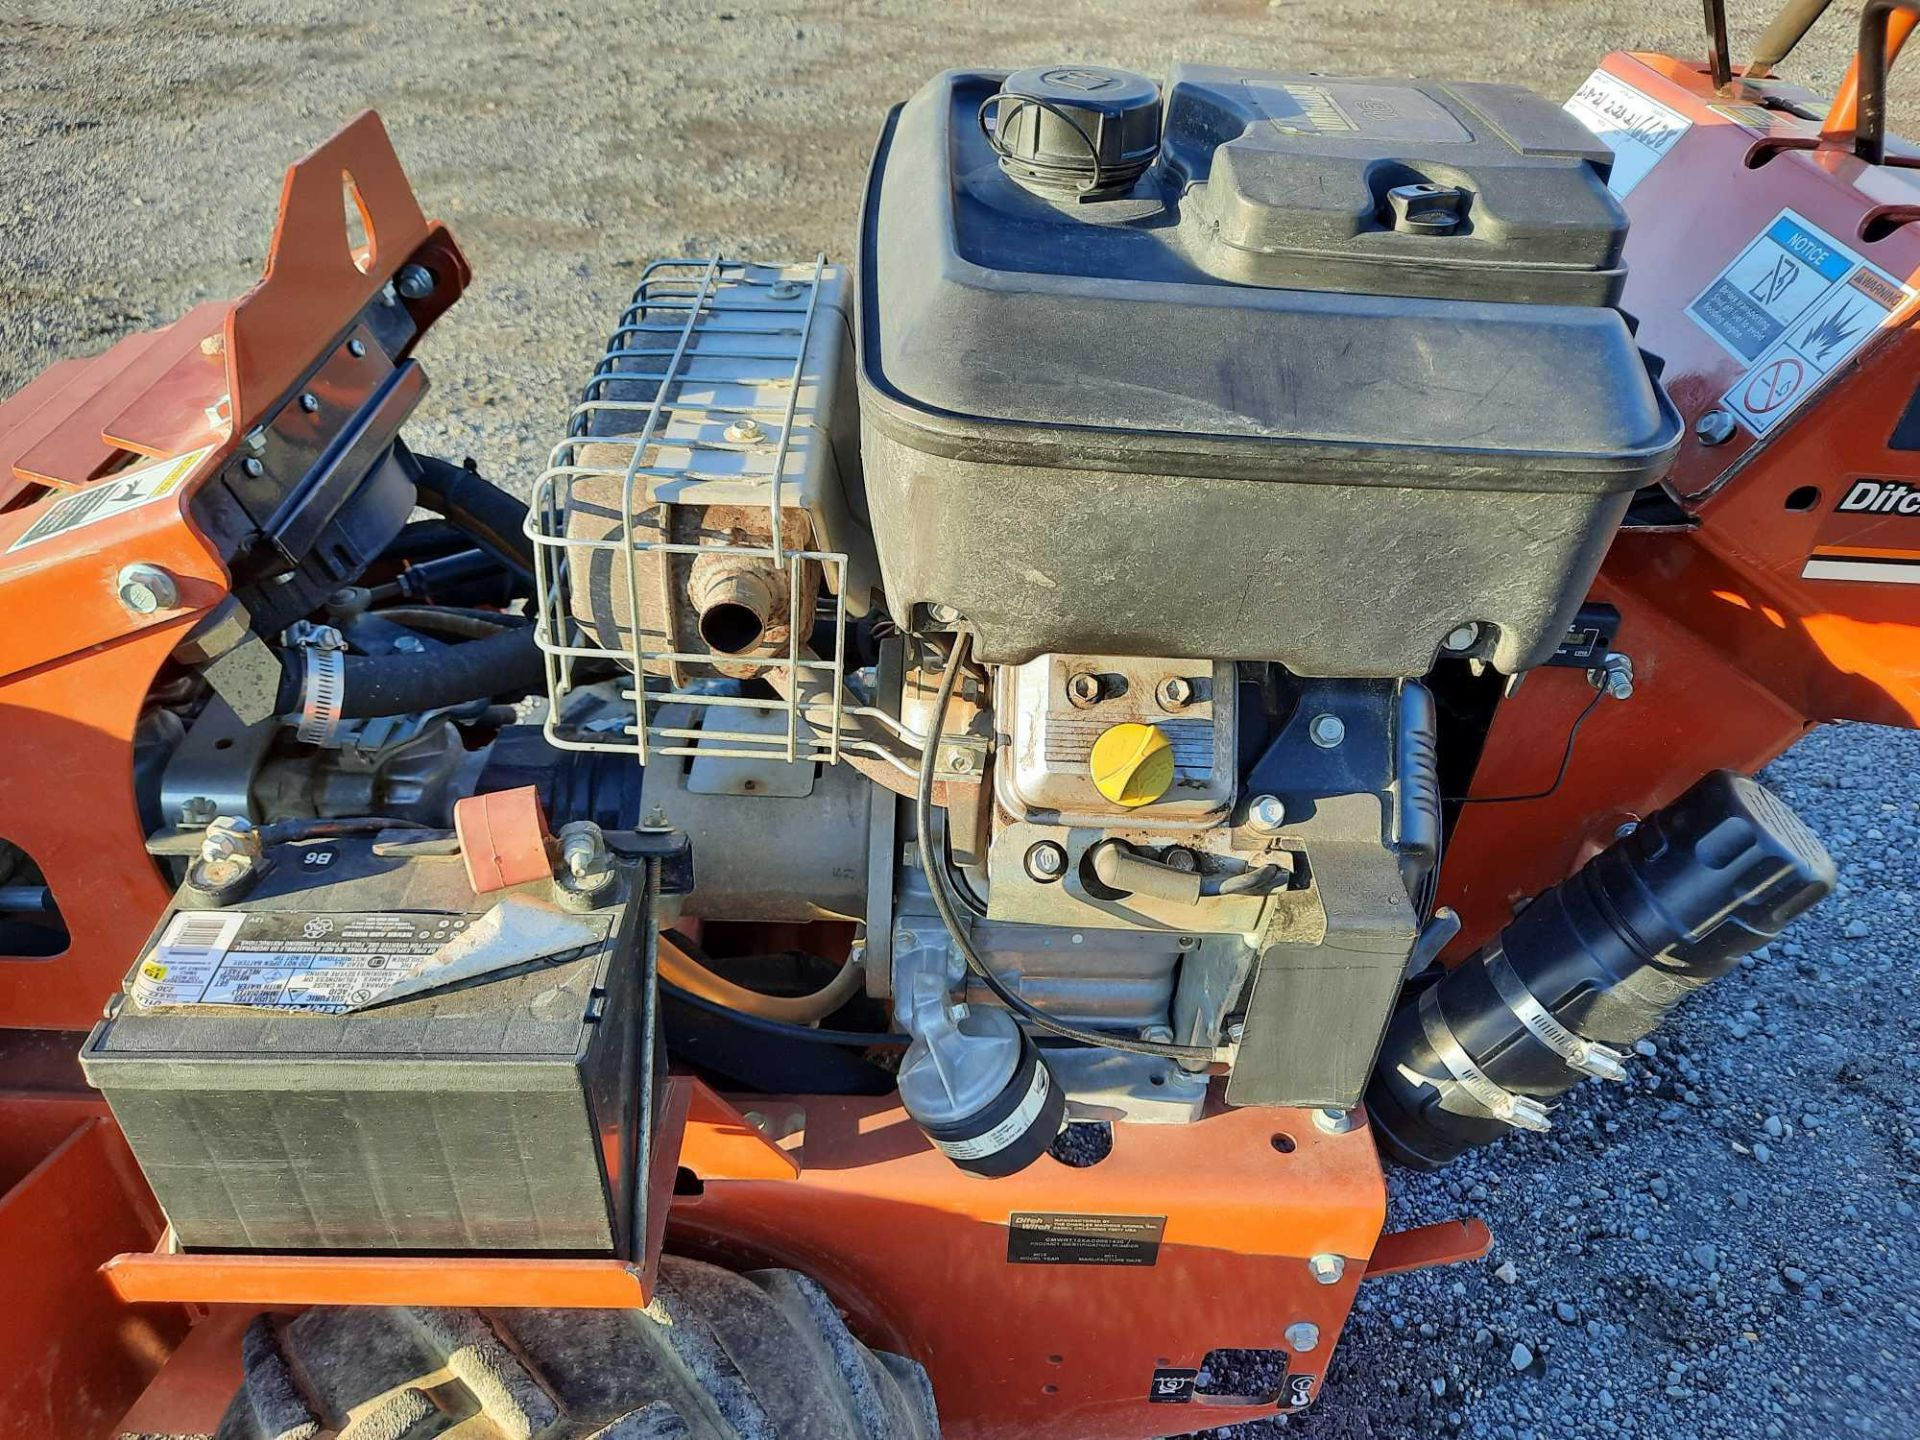 2012 DITCH WITCH RT12 WALK BEHIND TRENCHER - Image 8 of 11